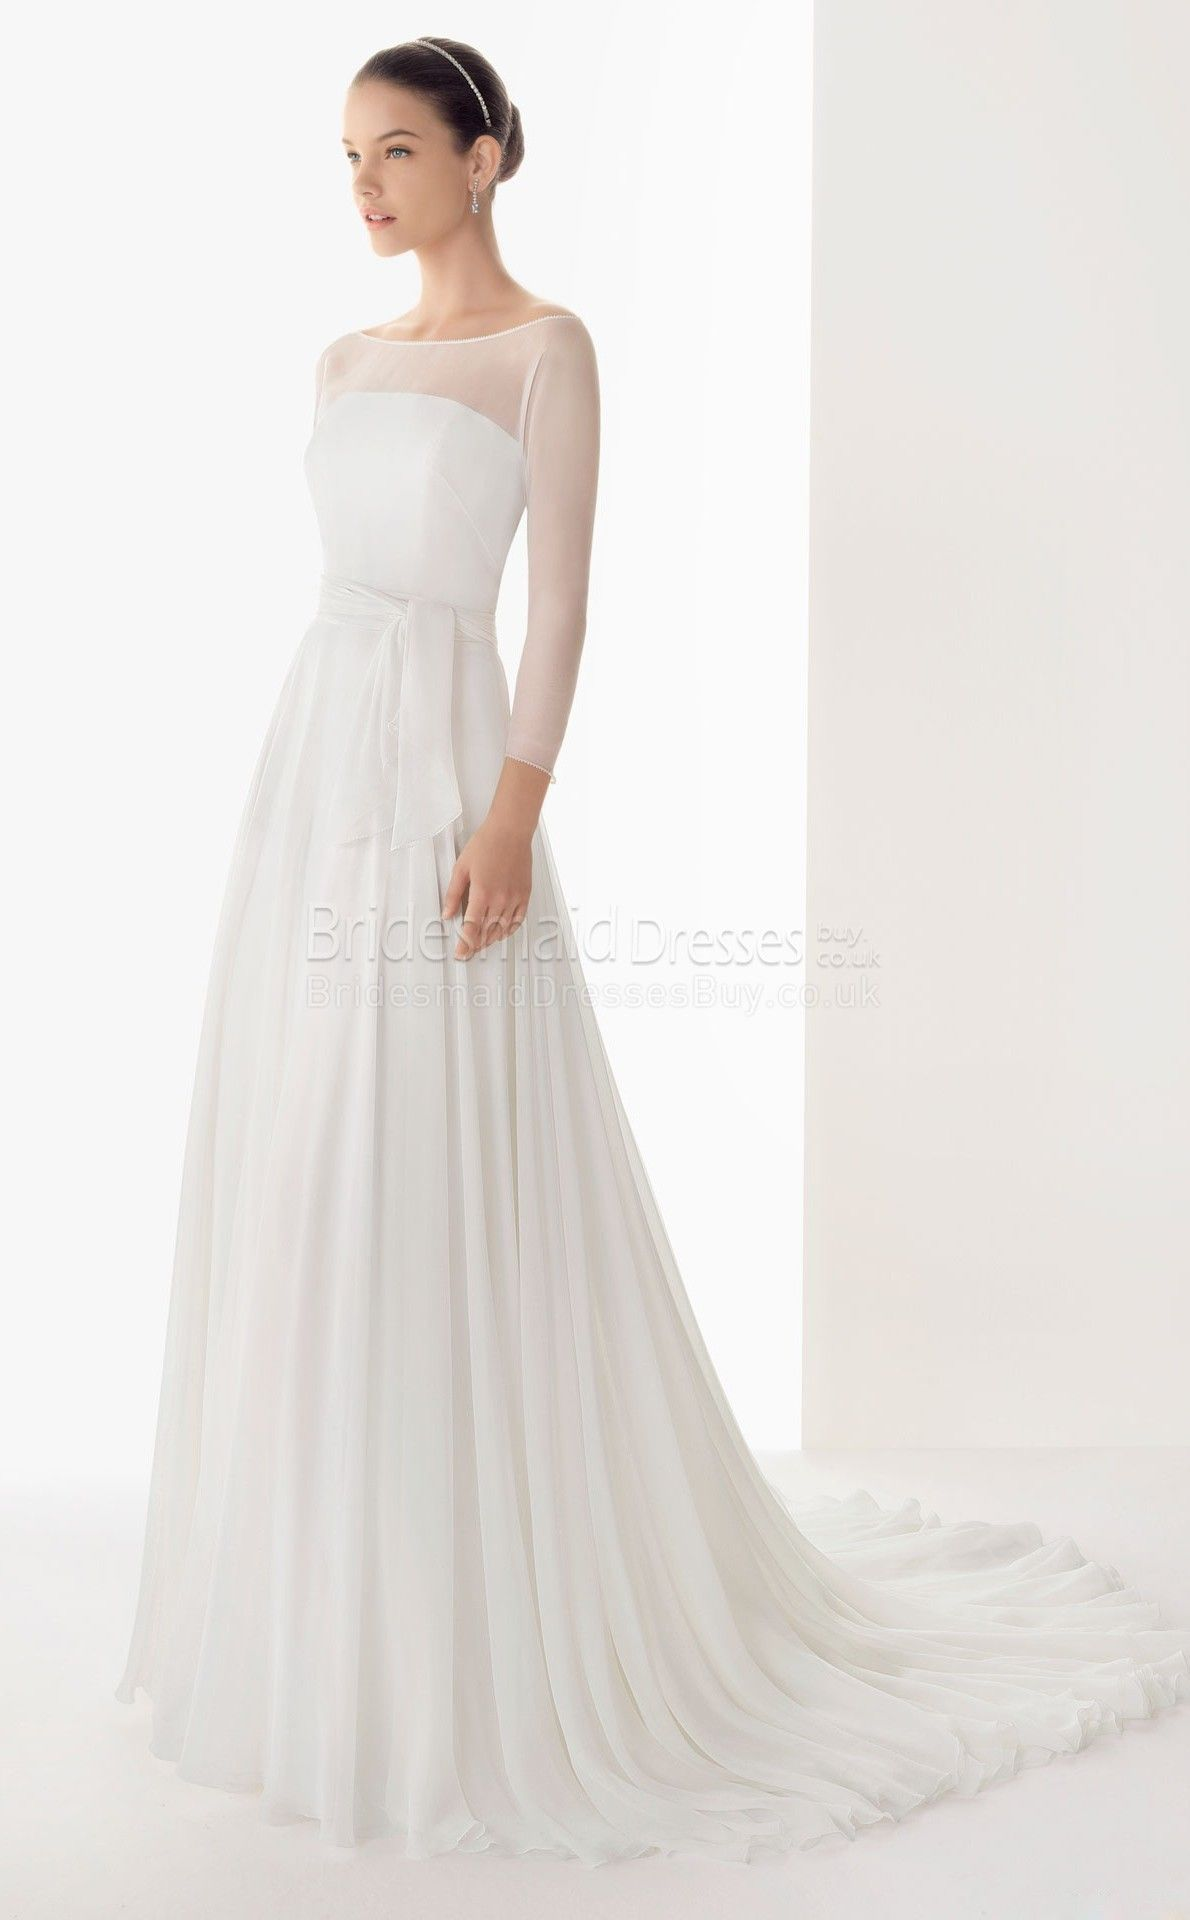 beach wedding dresses,simple wedding dresses bridesmaiddressesbuy.co ...